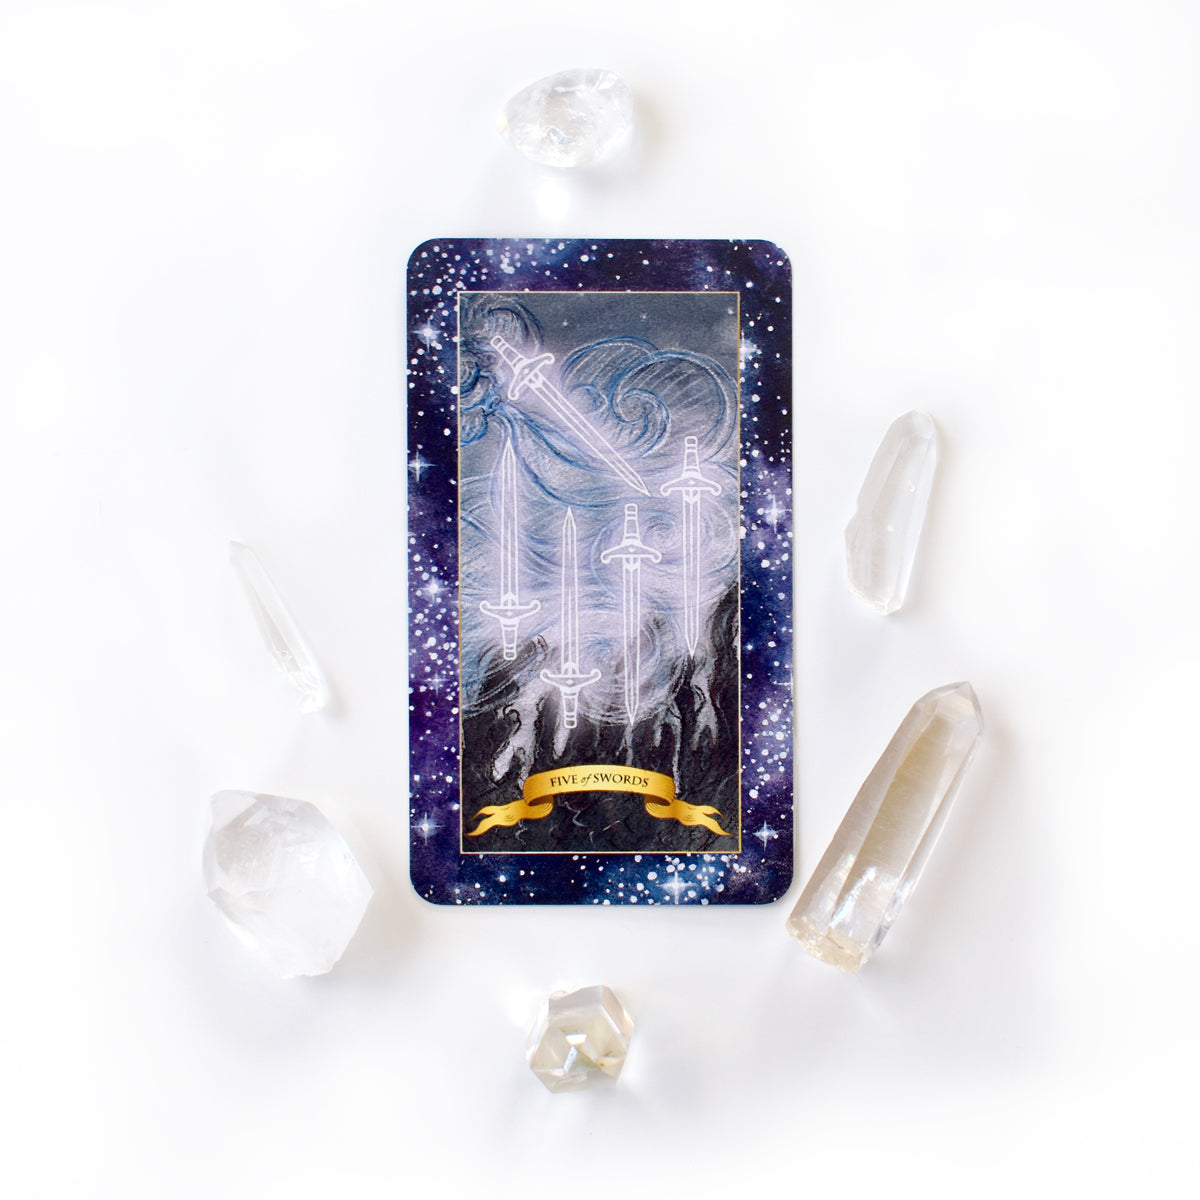 Learn Tarot Card Meanings - 5 of Swords